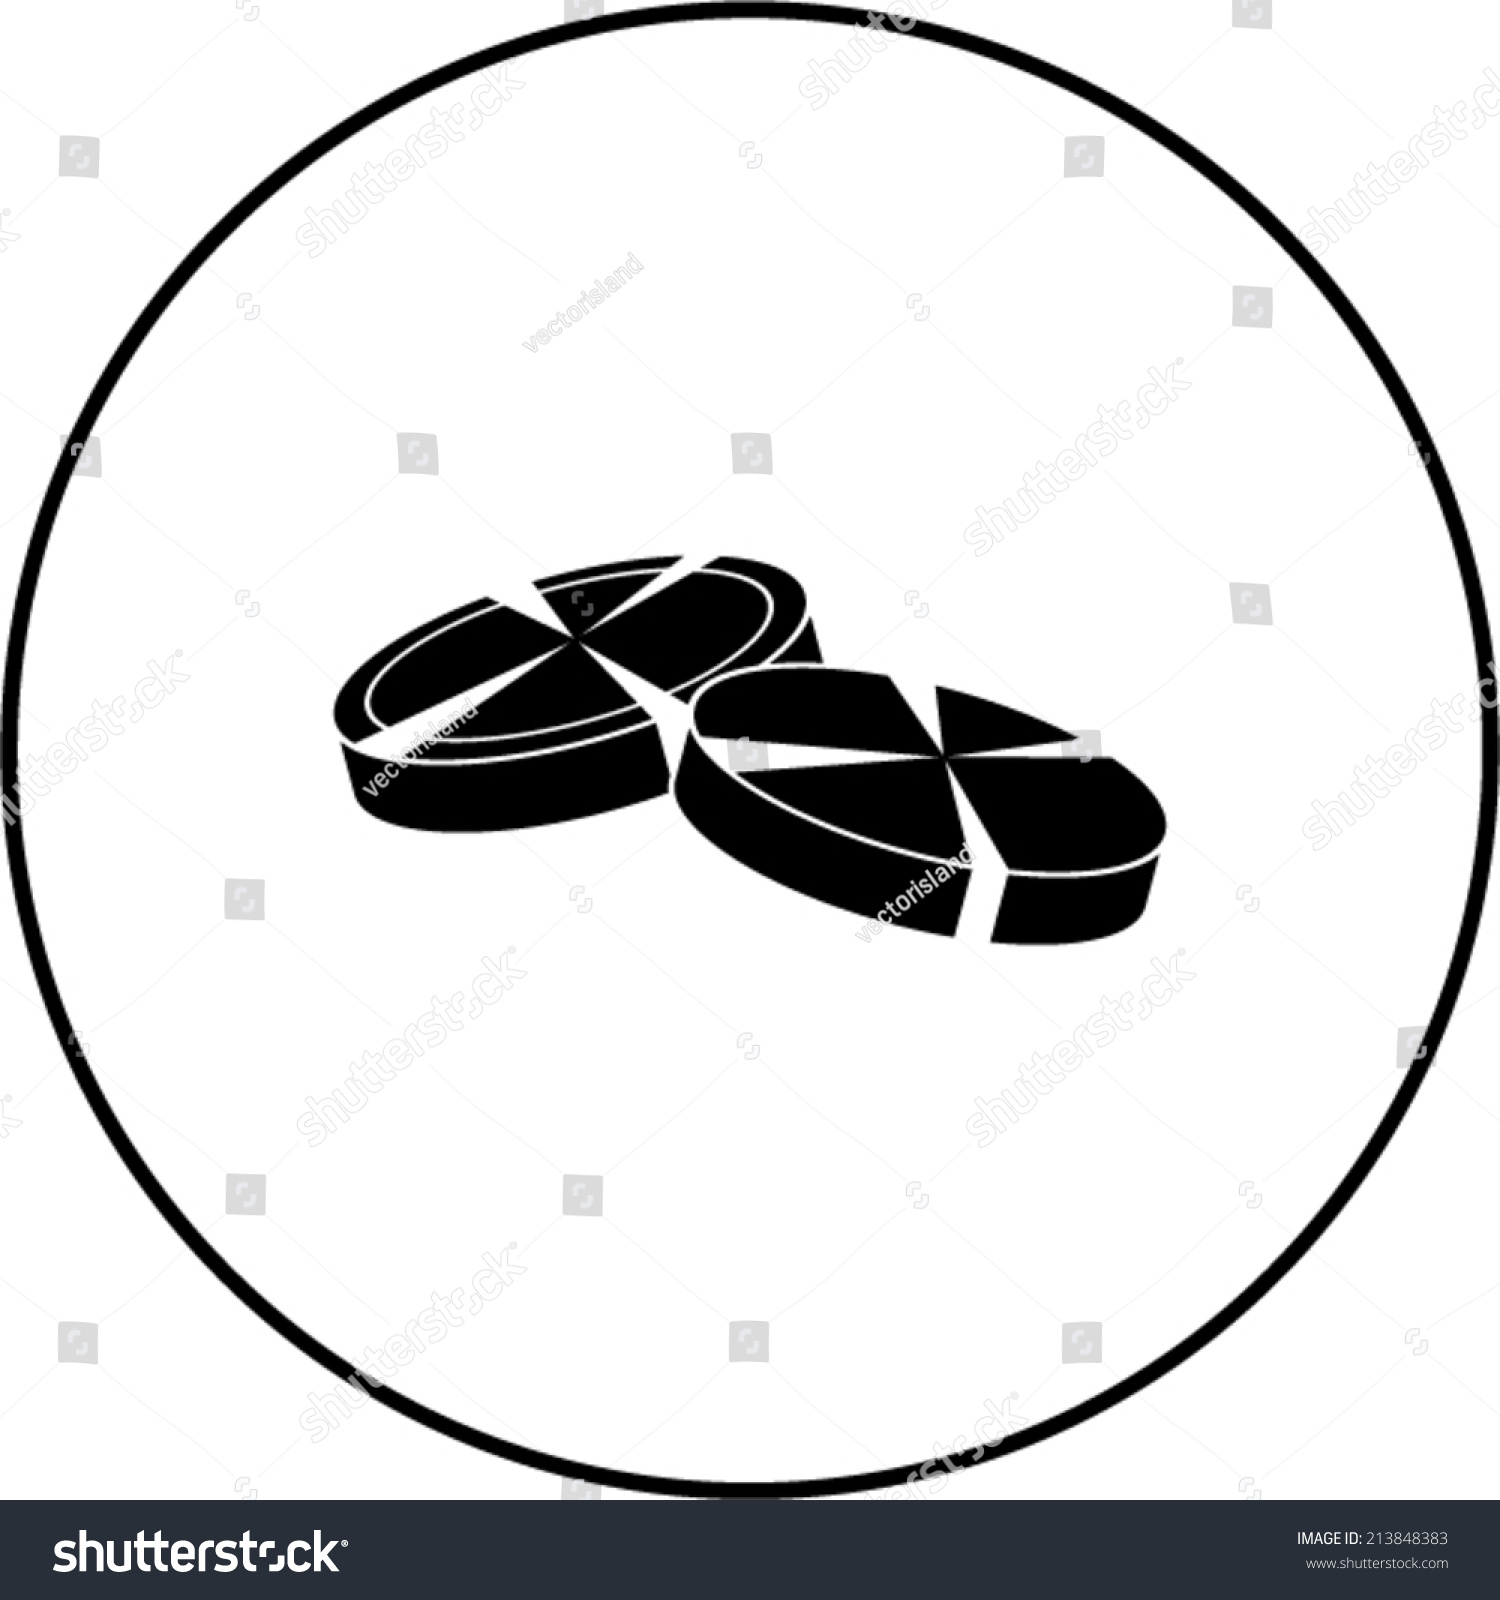 Button Cell Batteries Symbol Stock Vector HD (Royalty Free ...